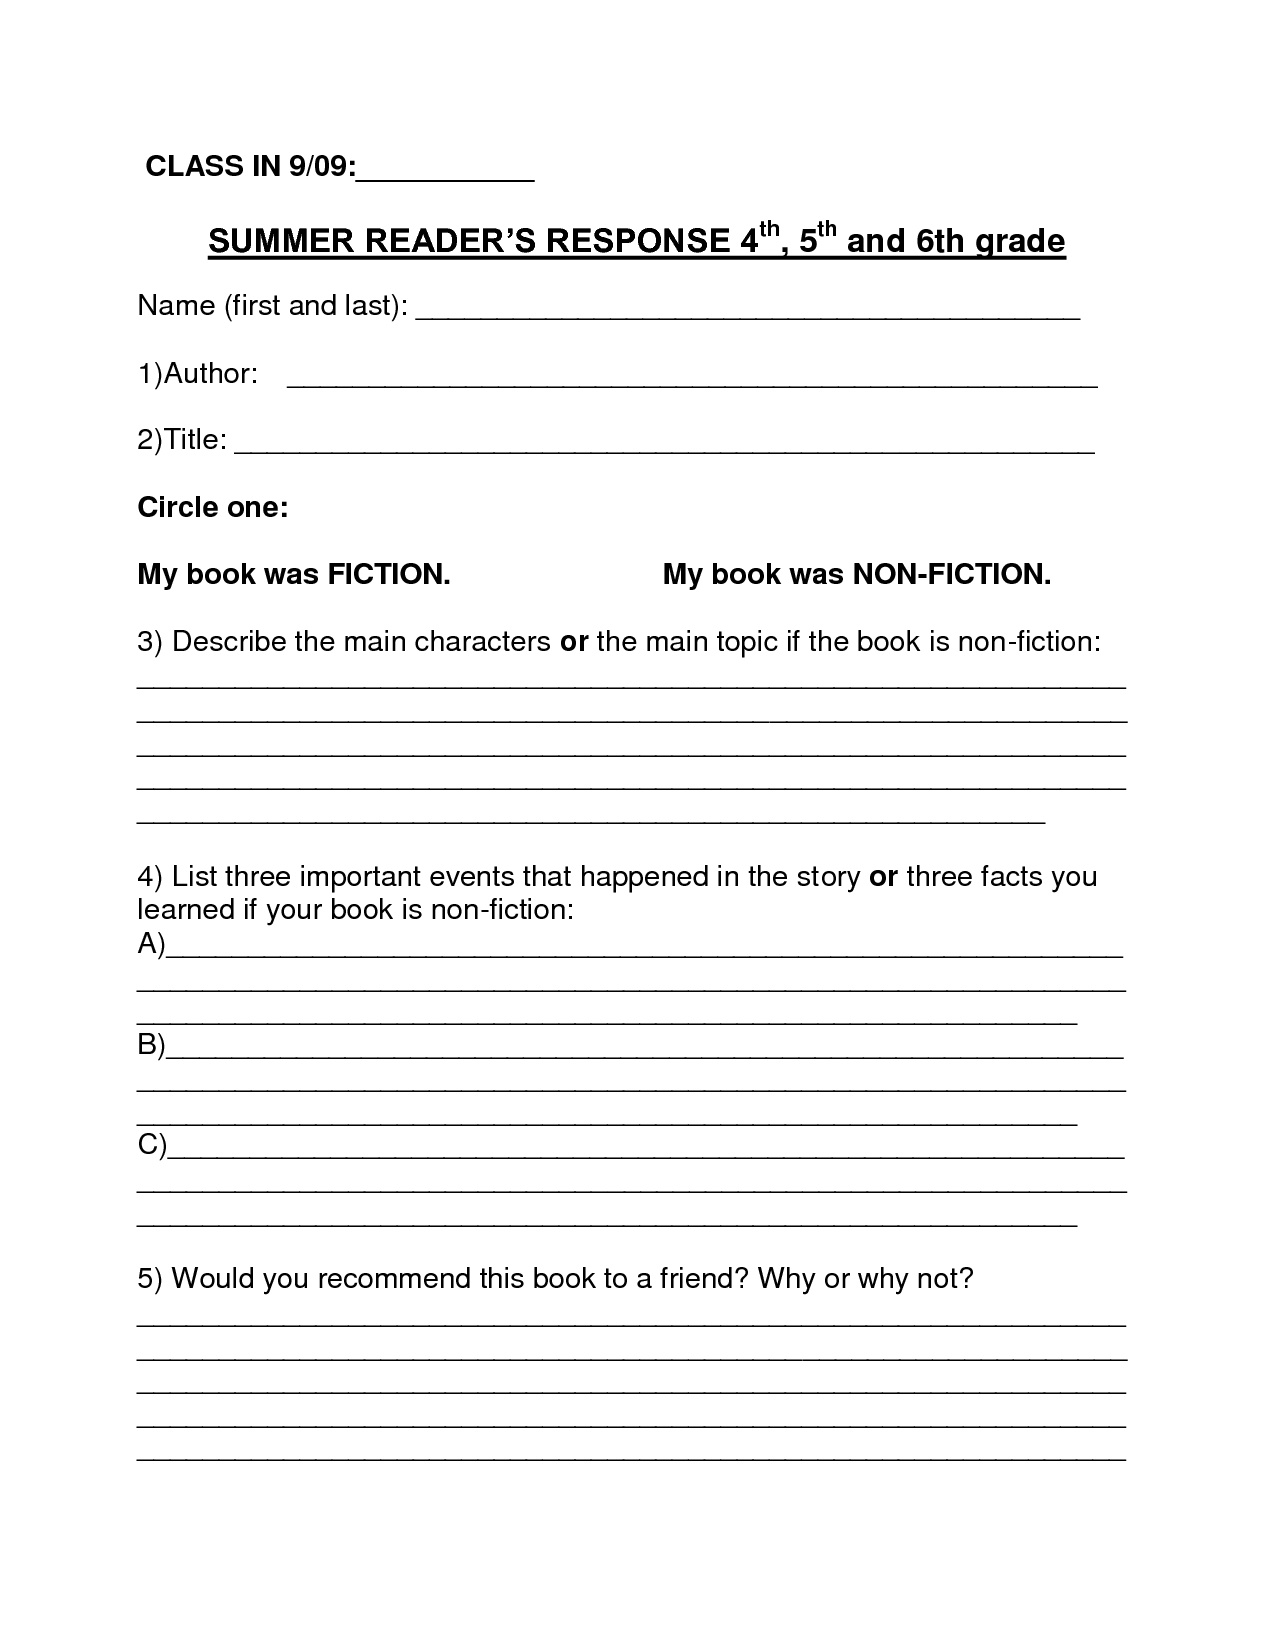 Image Result For Book Report Summer Reading Form 6Th Grade | Middle - Free Printable Book Report Forms For Second Grade